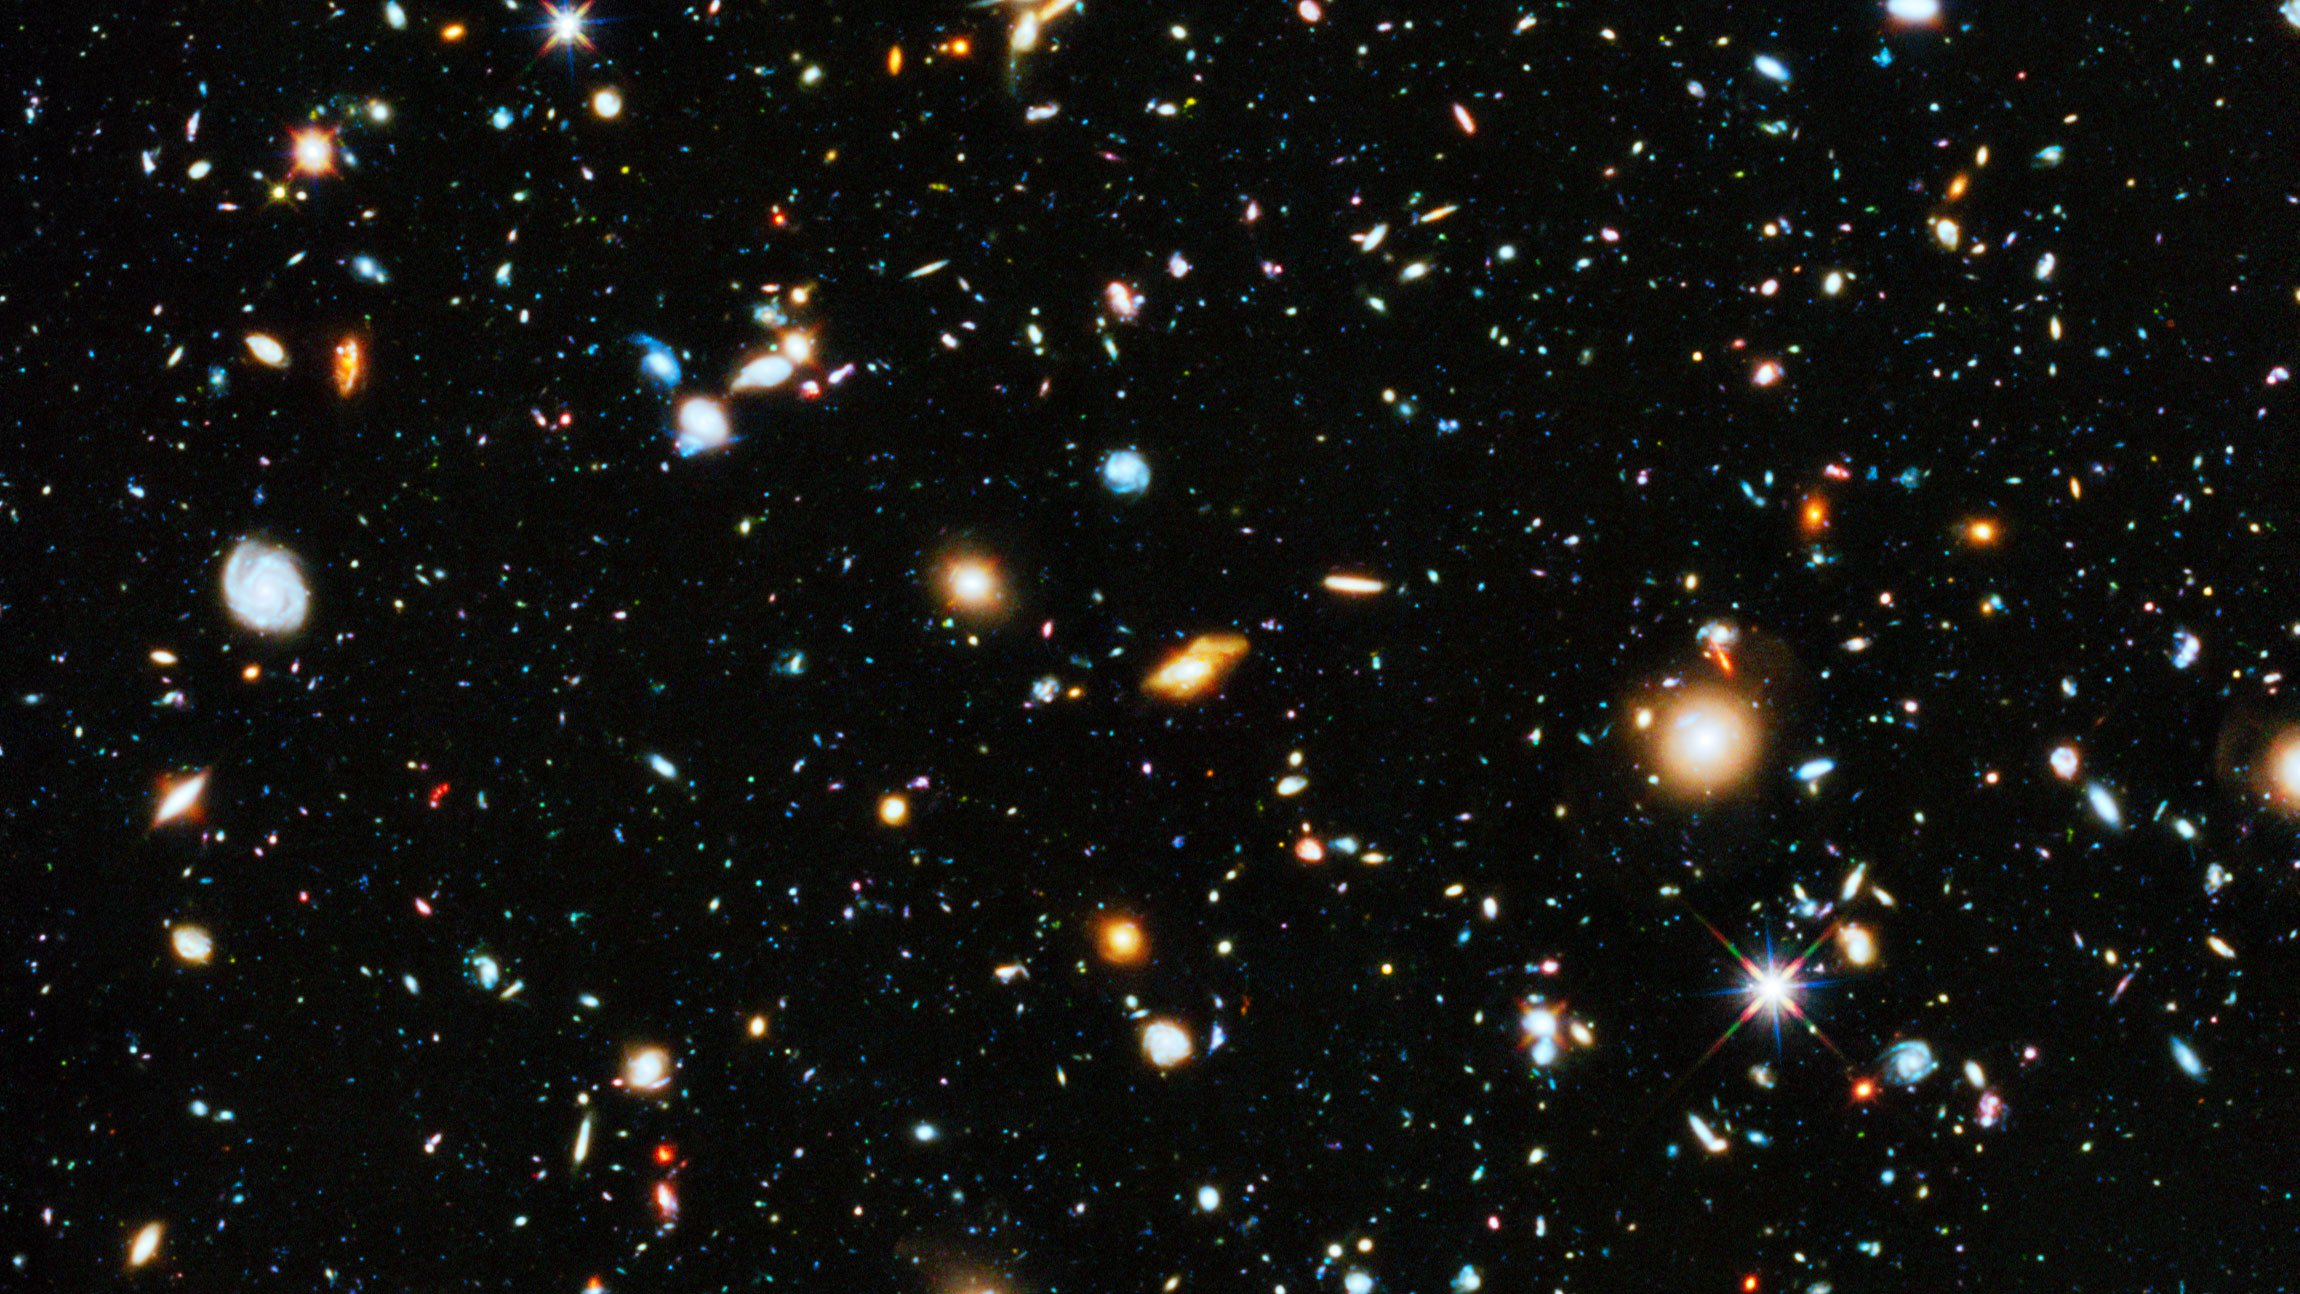 Life could exist in a 2D universe (according to physics, anyway)